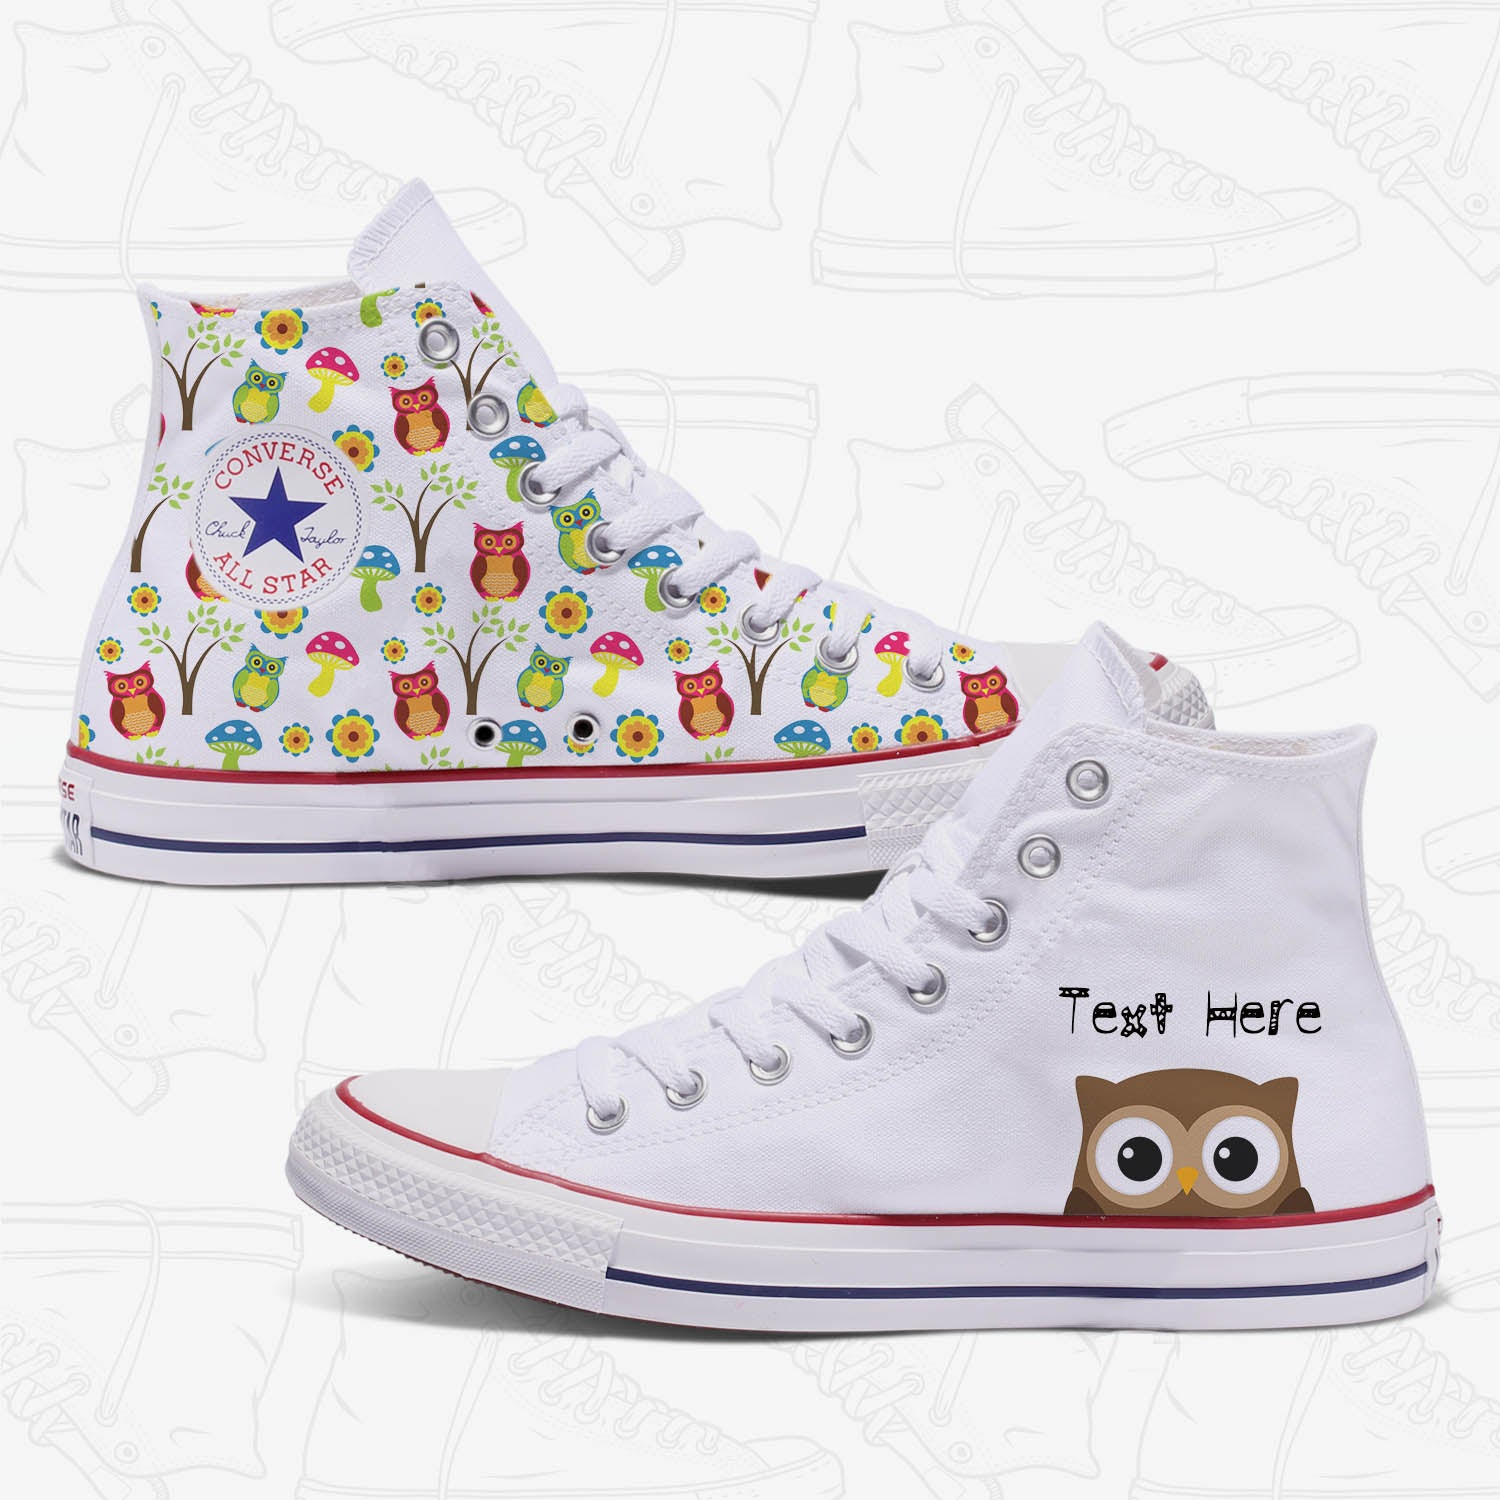 Owl Custom Converse High Top White